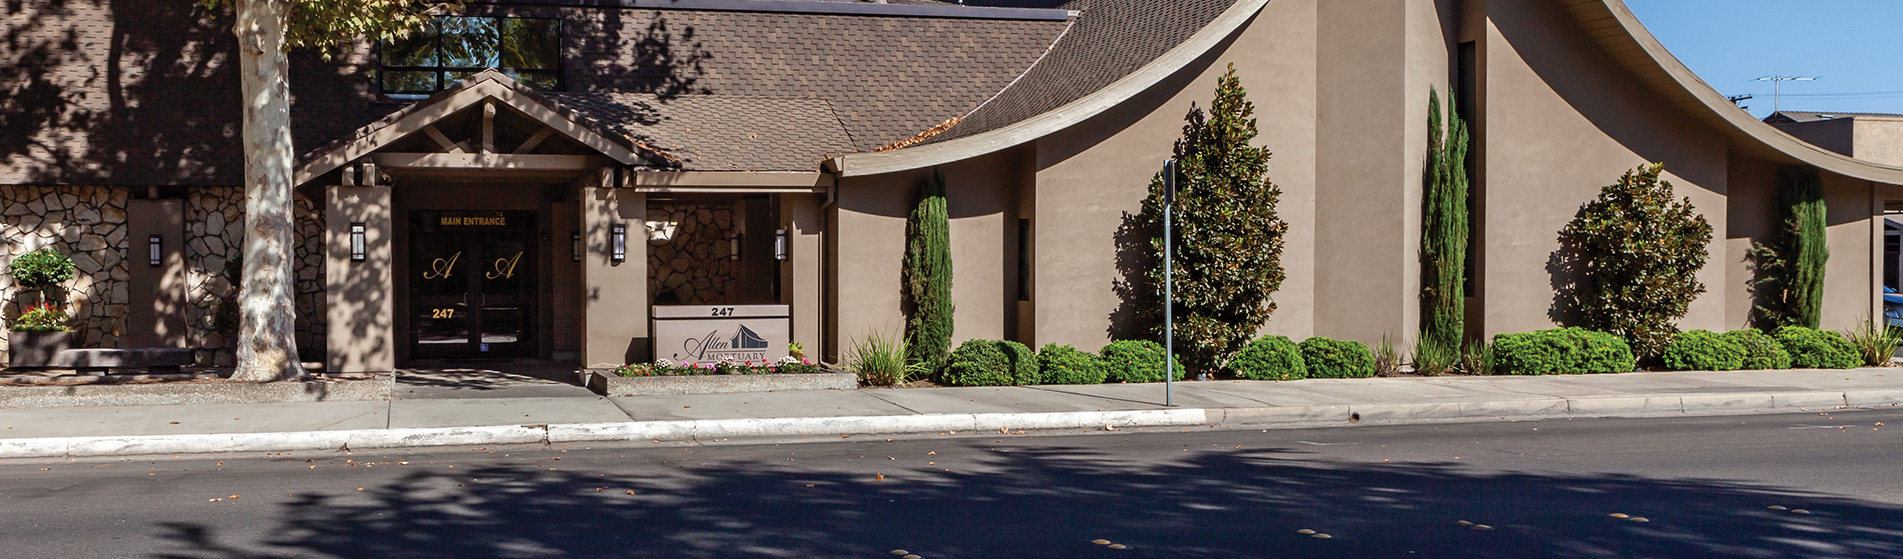 Allen Mortuary | Centrally located historic downtown Turlock, CA